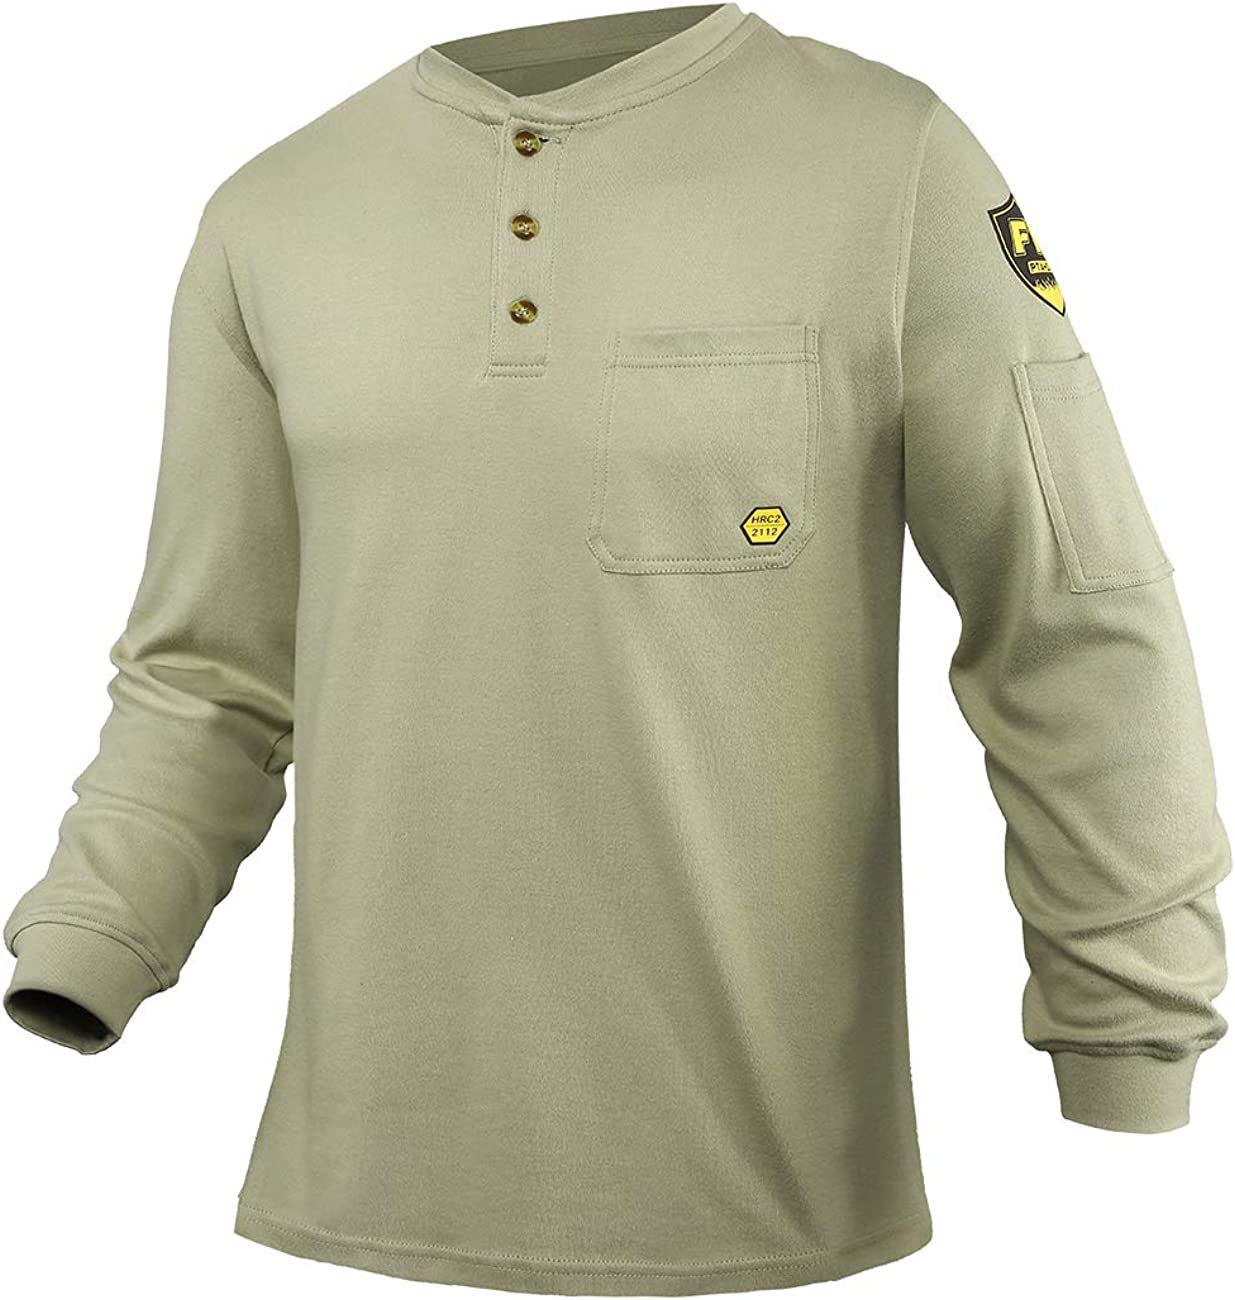 OFFicial site PTAHDUS FR Shirts OFFicial mail order Men's Flame Resistant Sleeve Long Henley